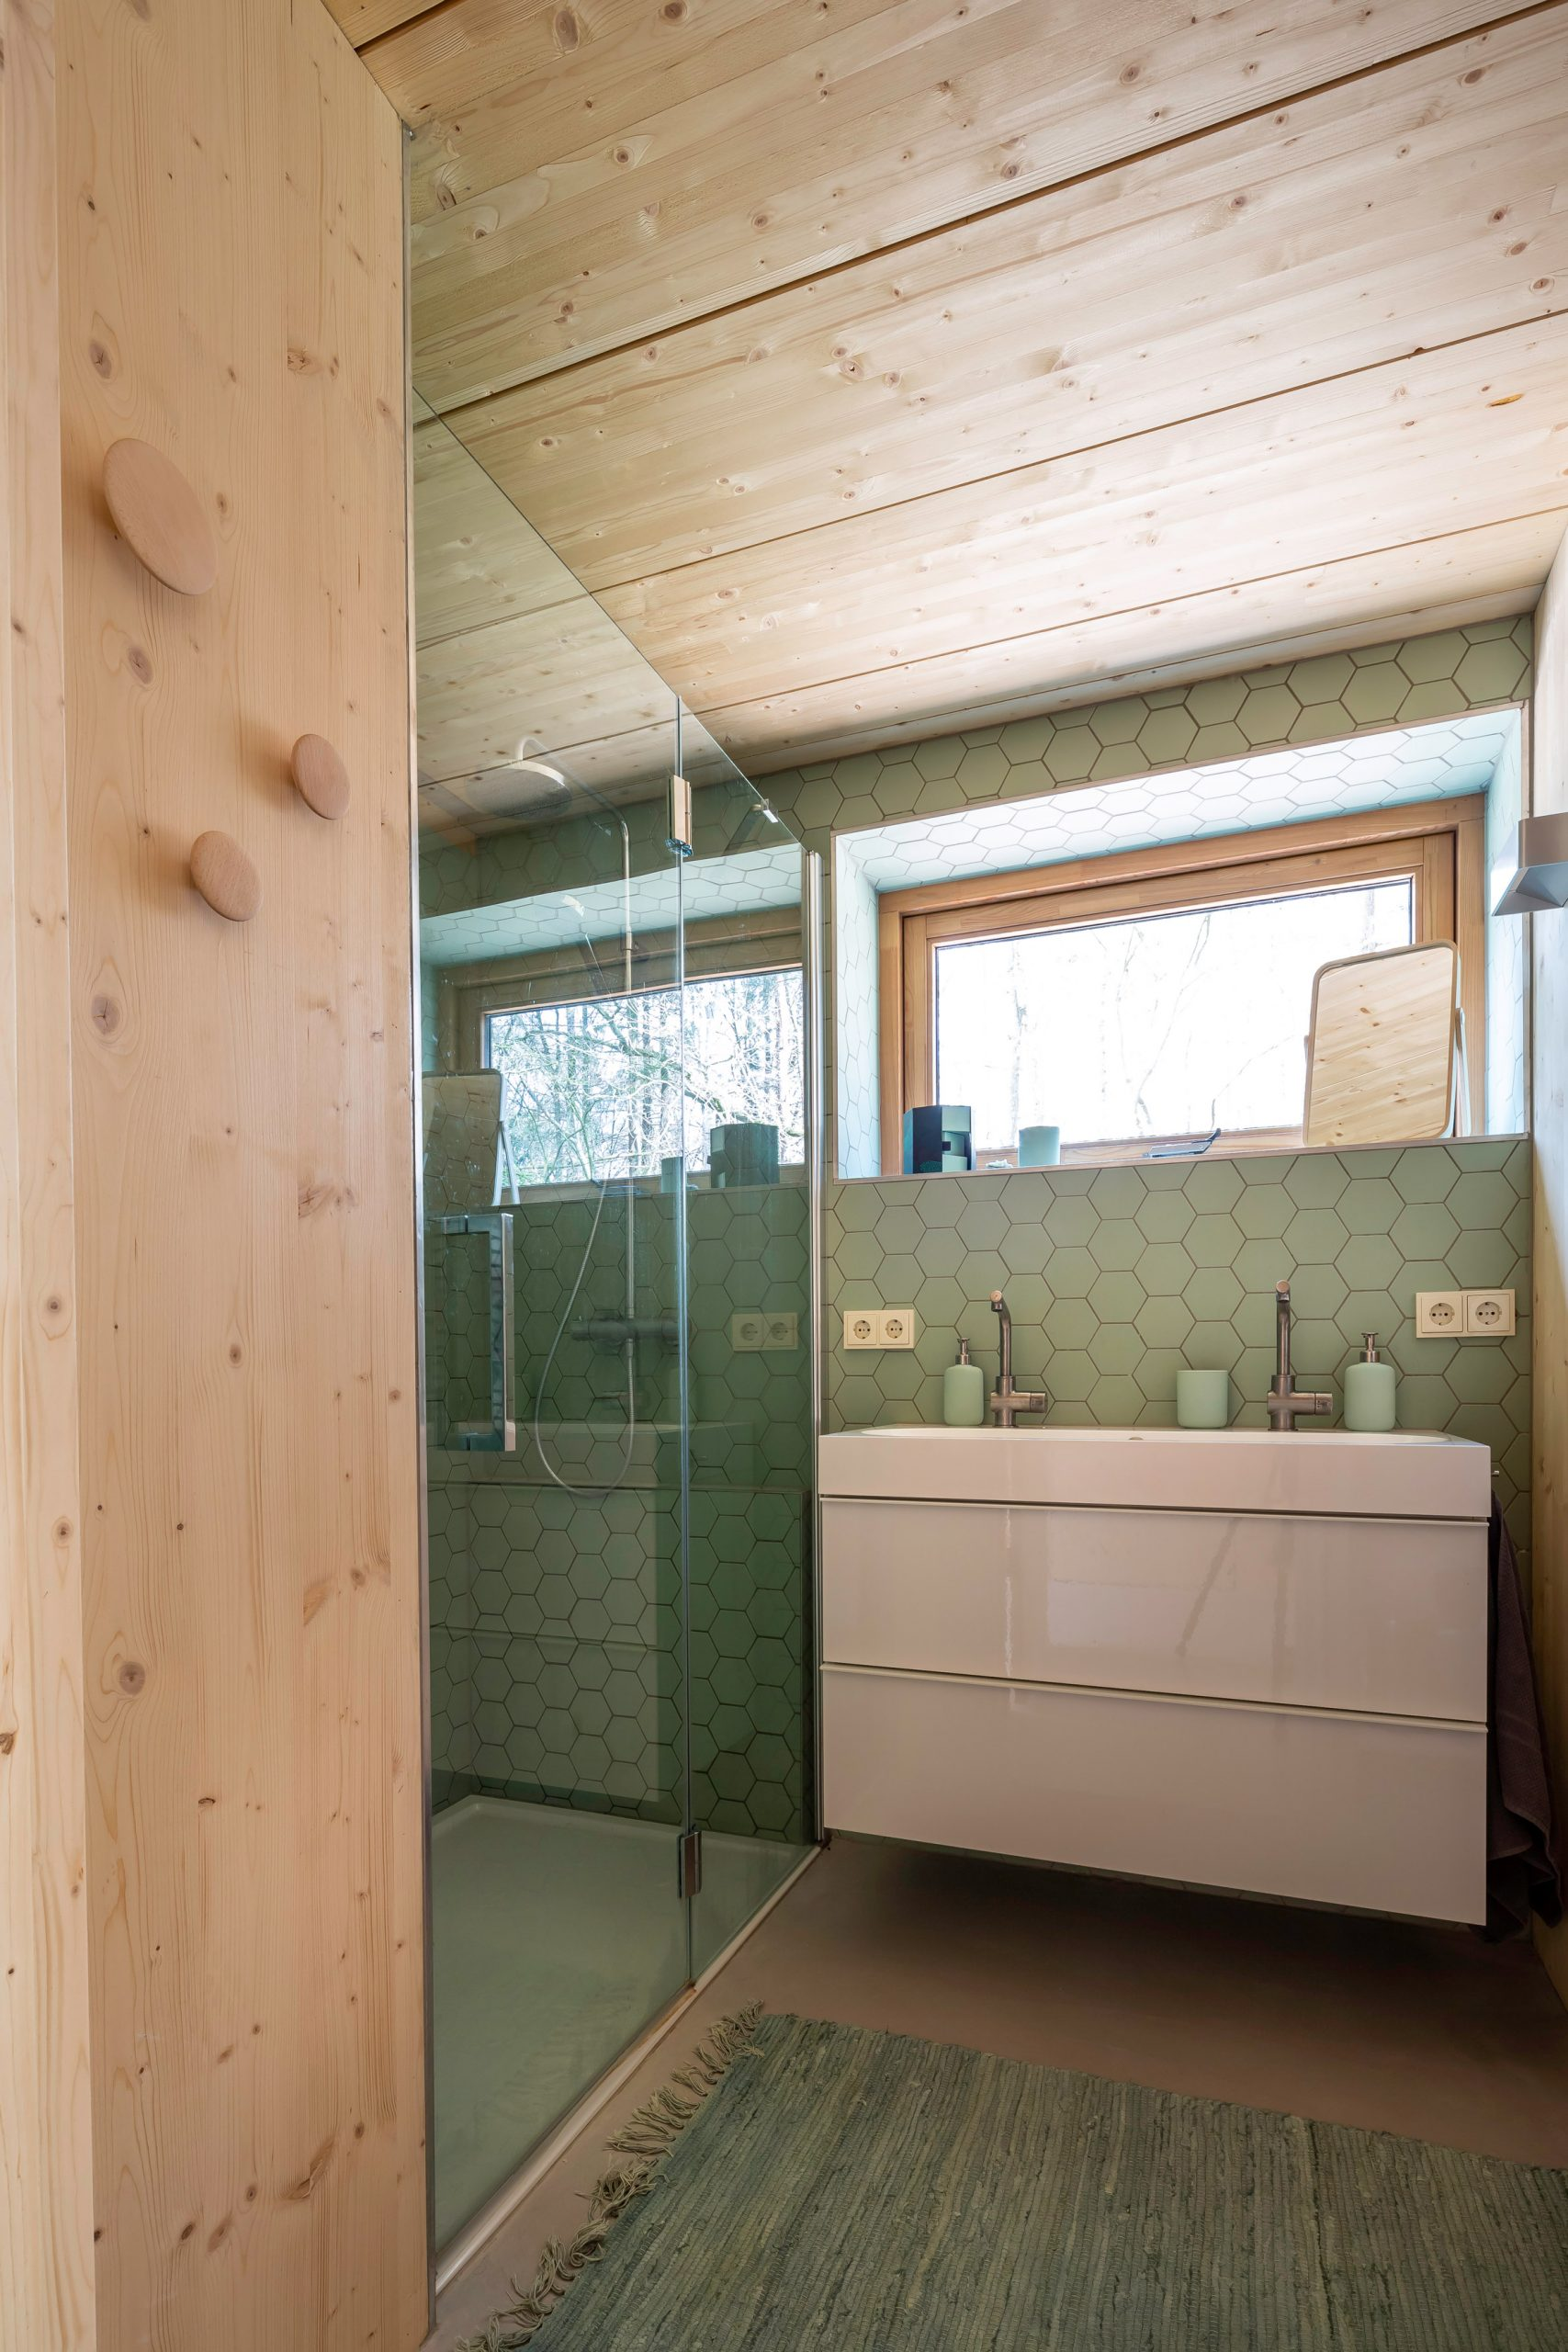 A wooden bathroom with green tiles